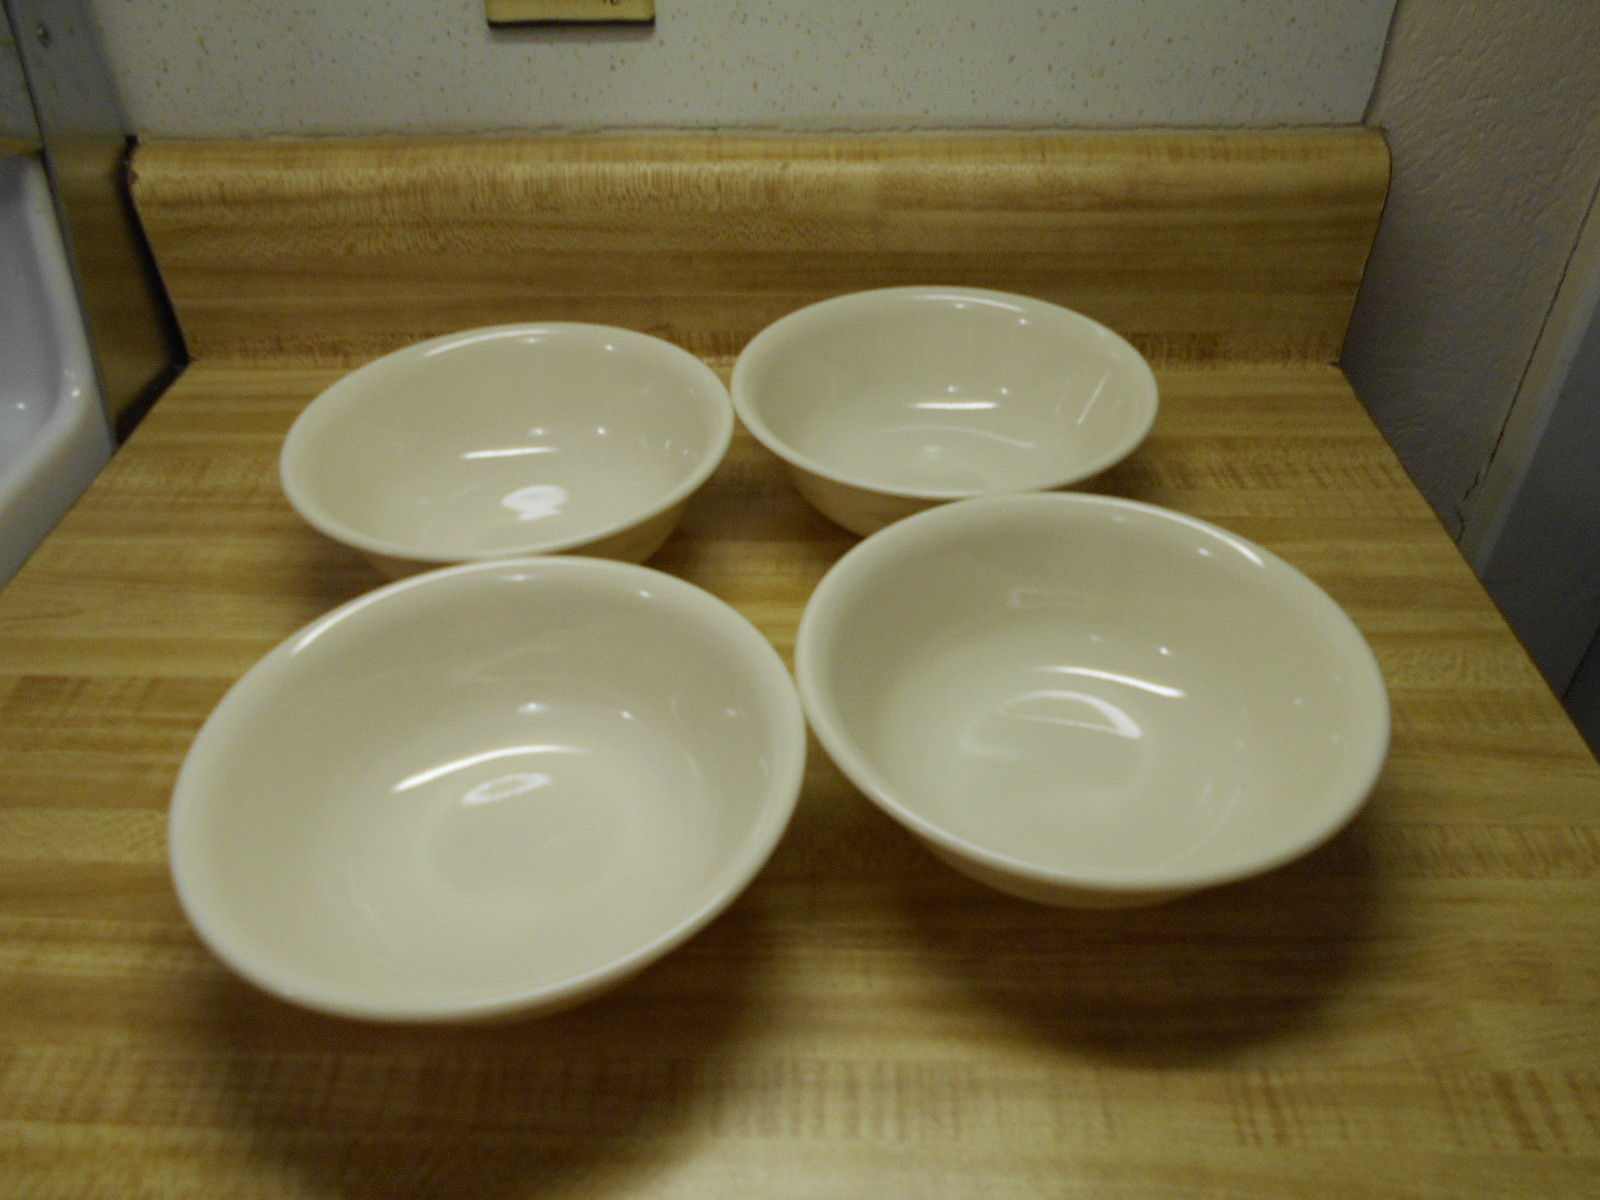 corelle textured leaves bowls and similar items